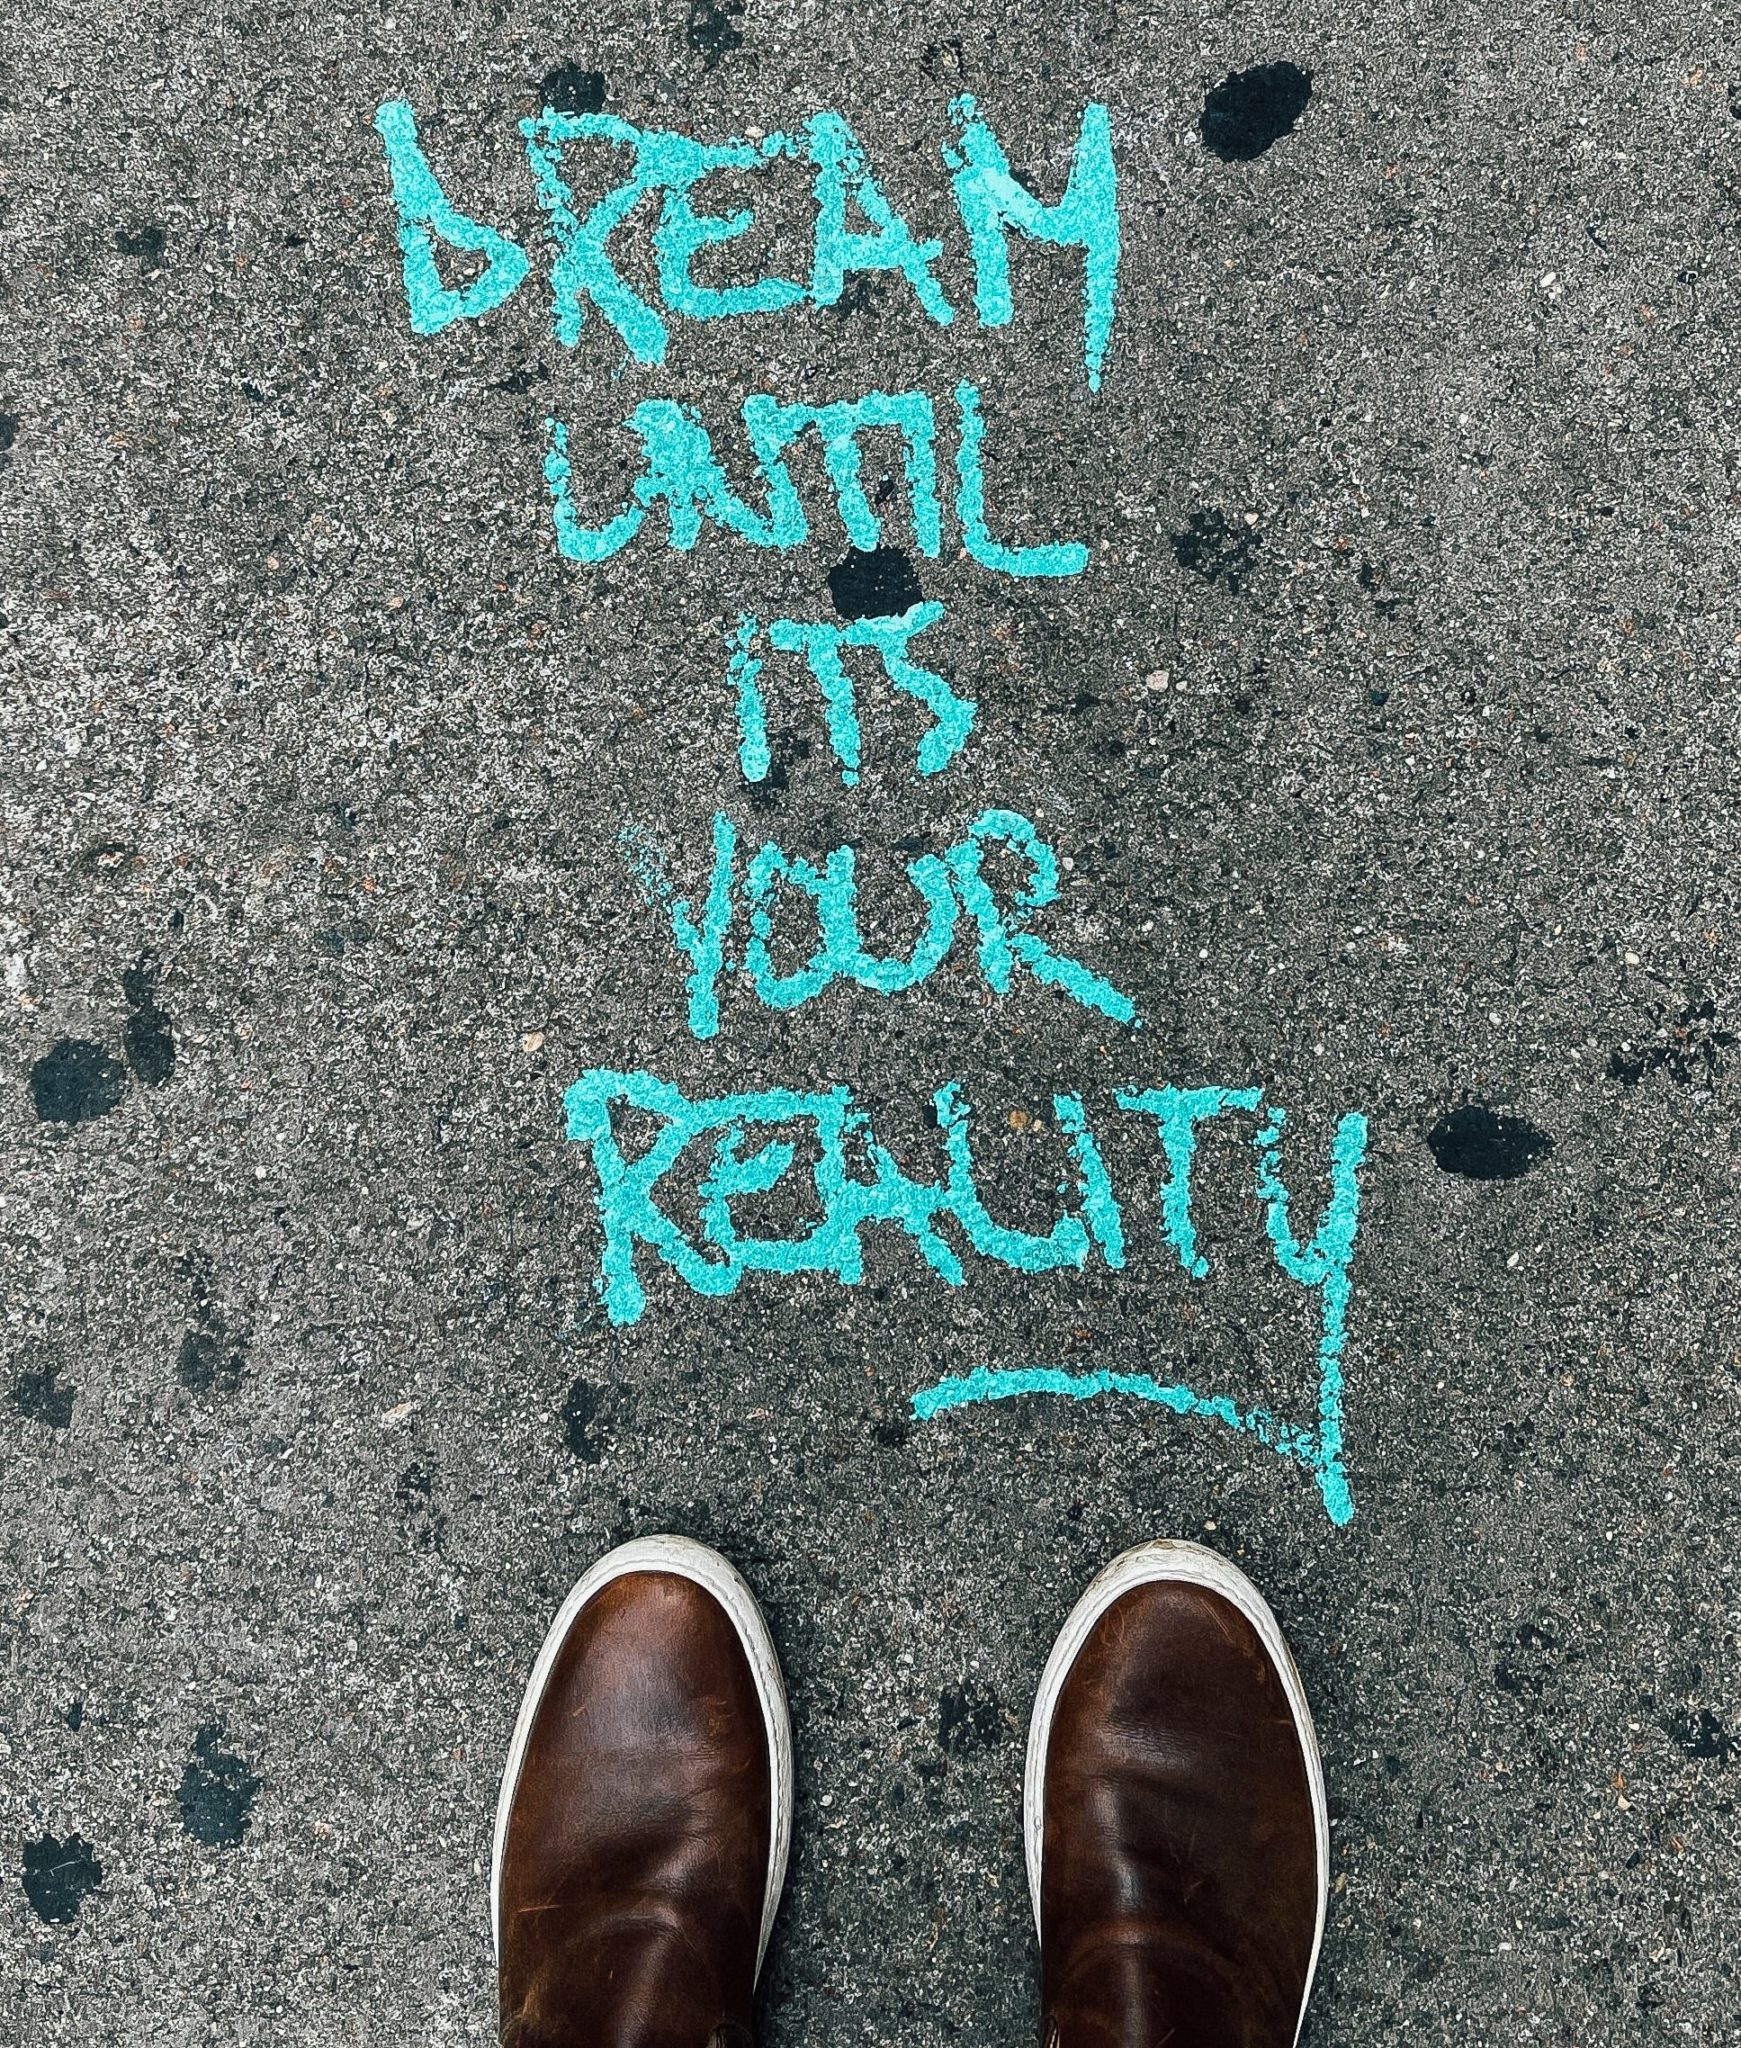 Dream until it's your reality